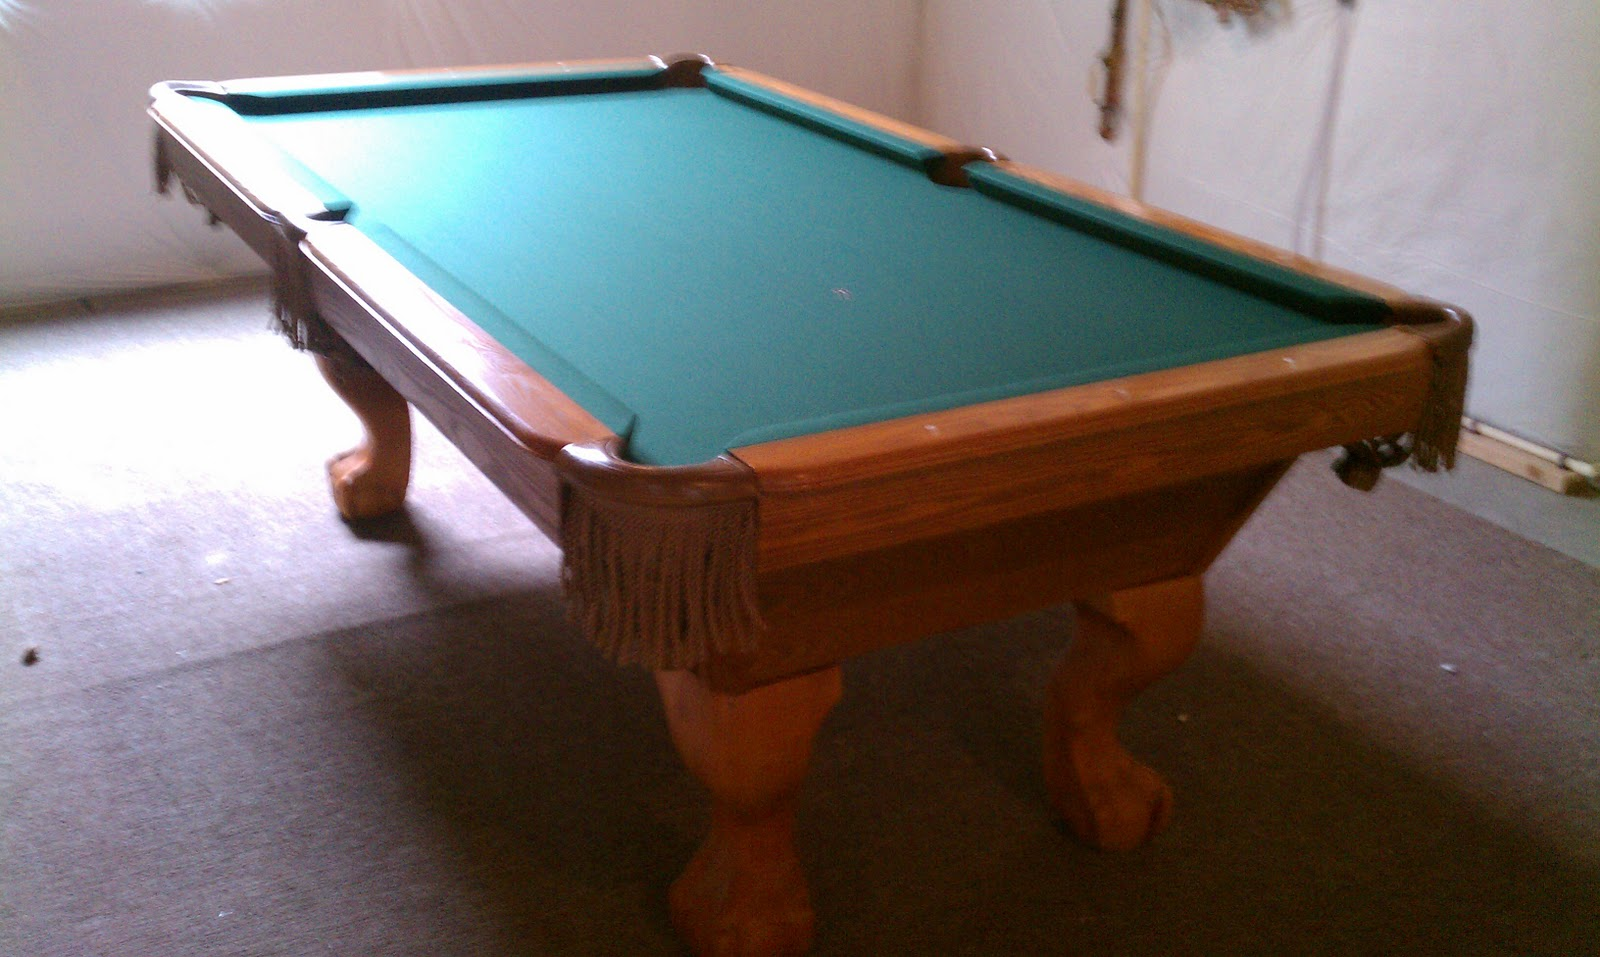 Big Break Billiards World Of Leisure Makes Such A Bad Pool Table - World of leisure pool table